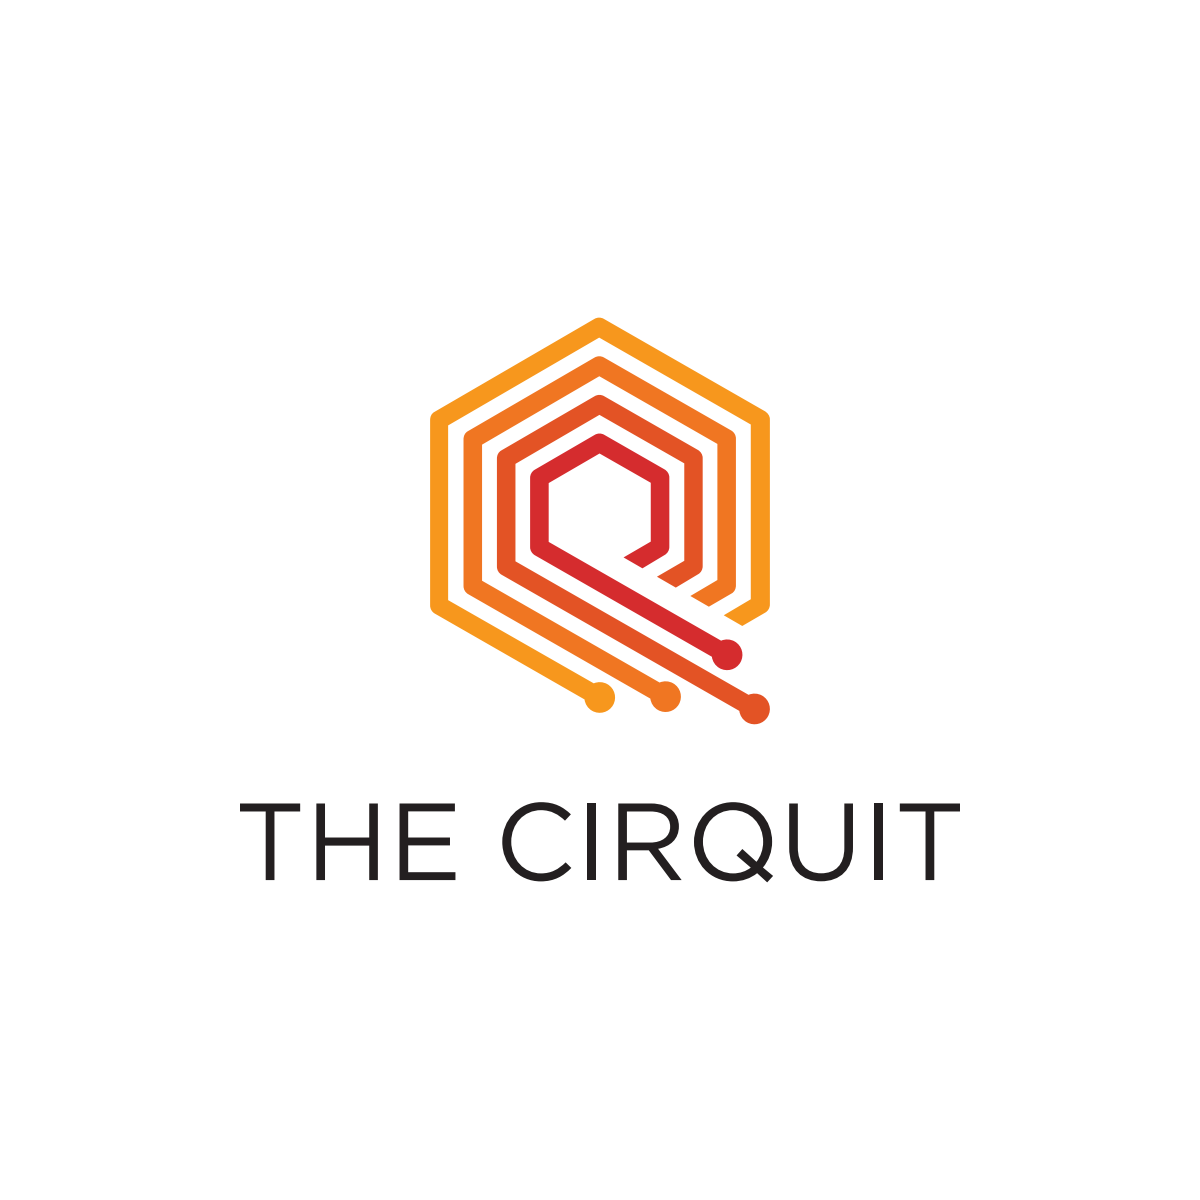 Logo for The Cirquit